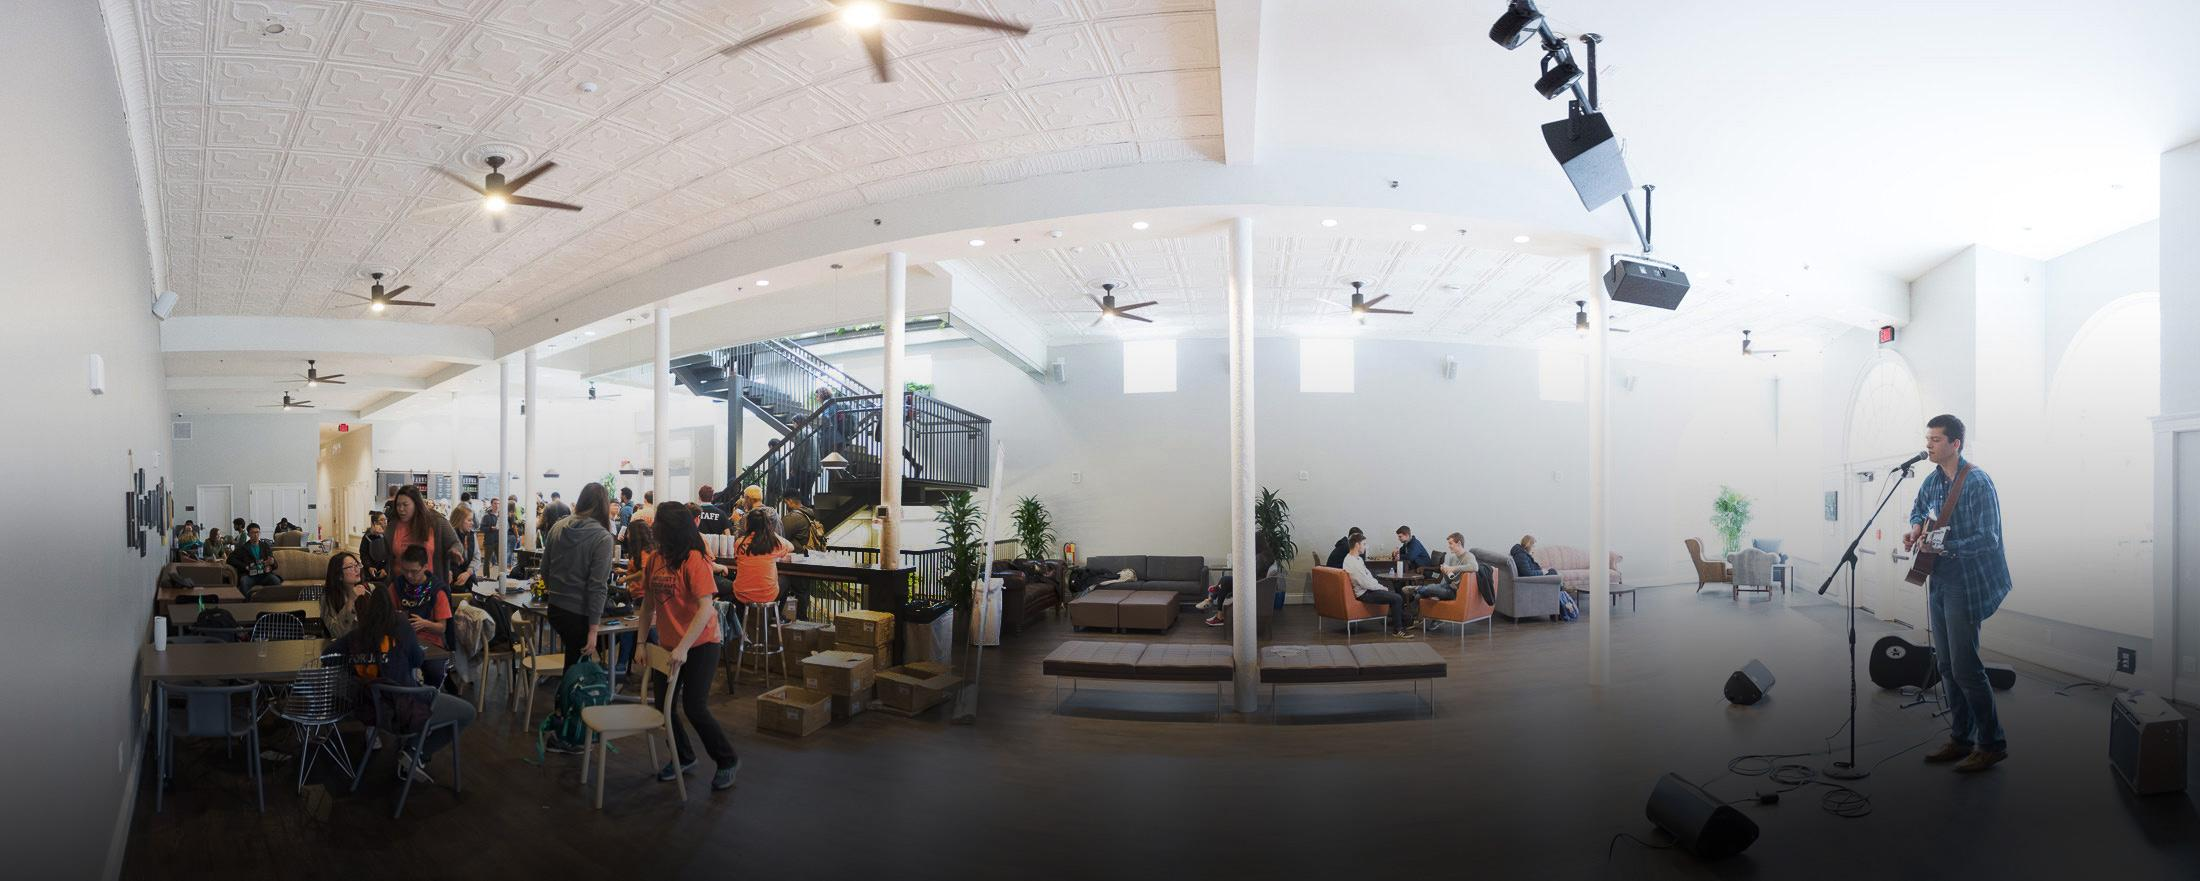 Students Move Into the New 1515 Building | UVA Today